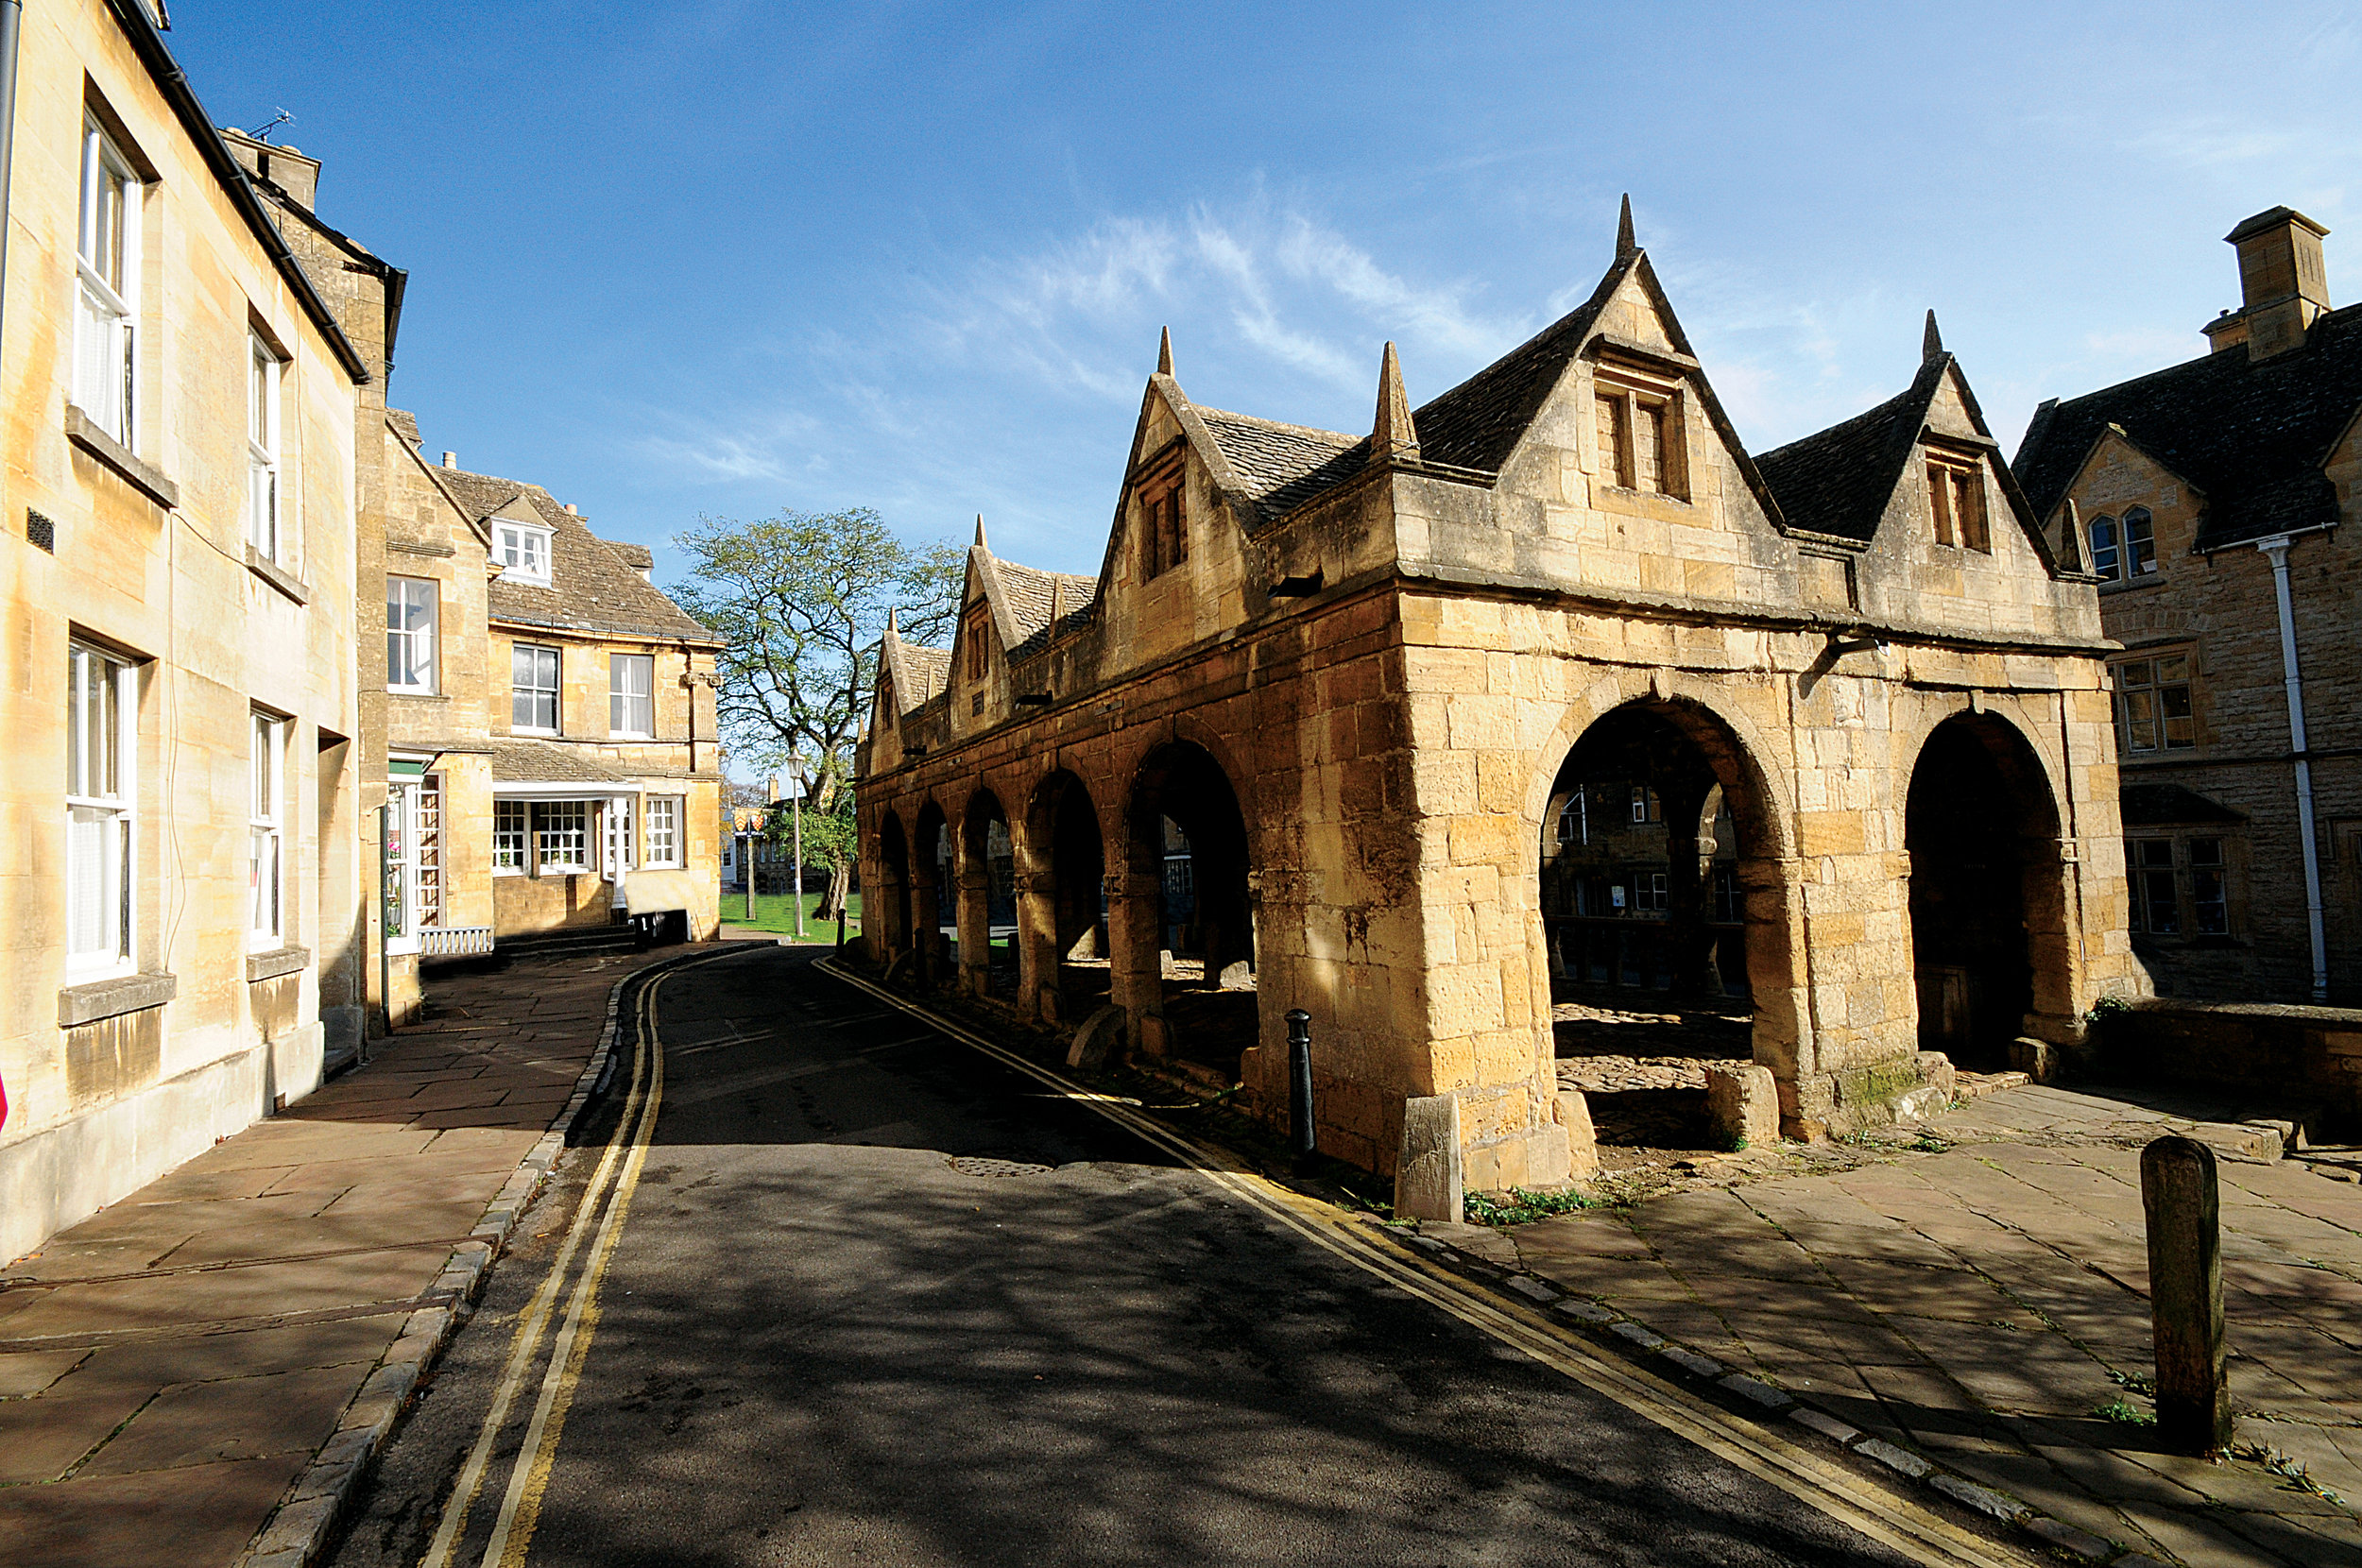 Market Hall, Chipping Campden, Glos 04.jpg